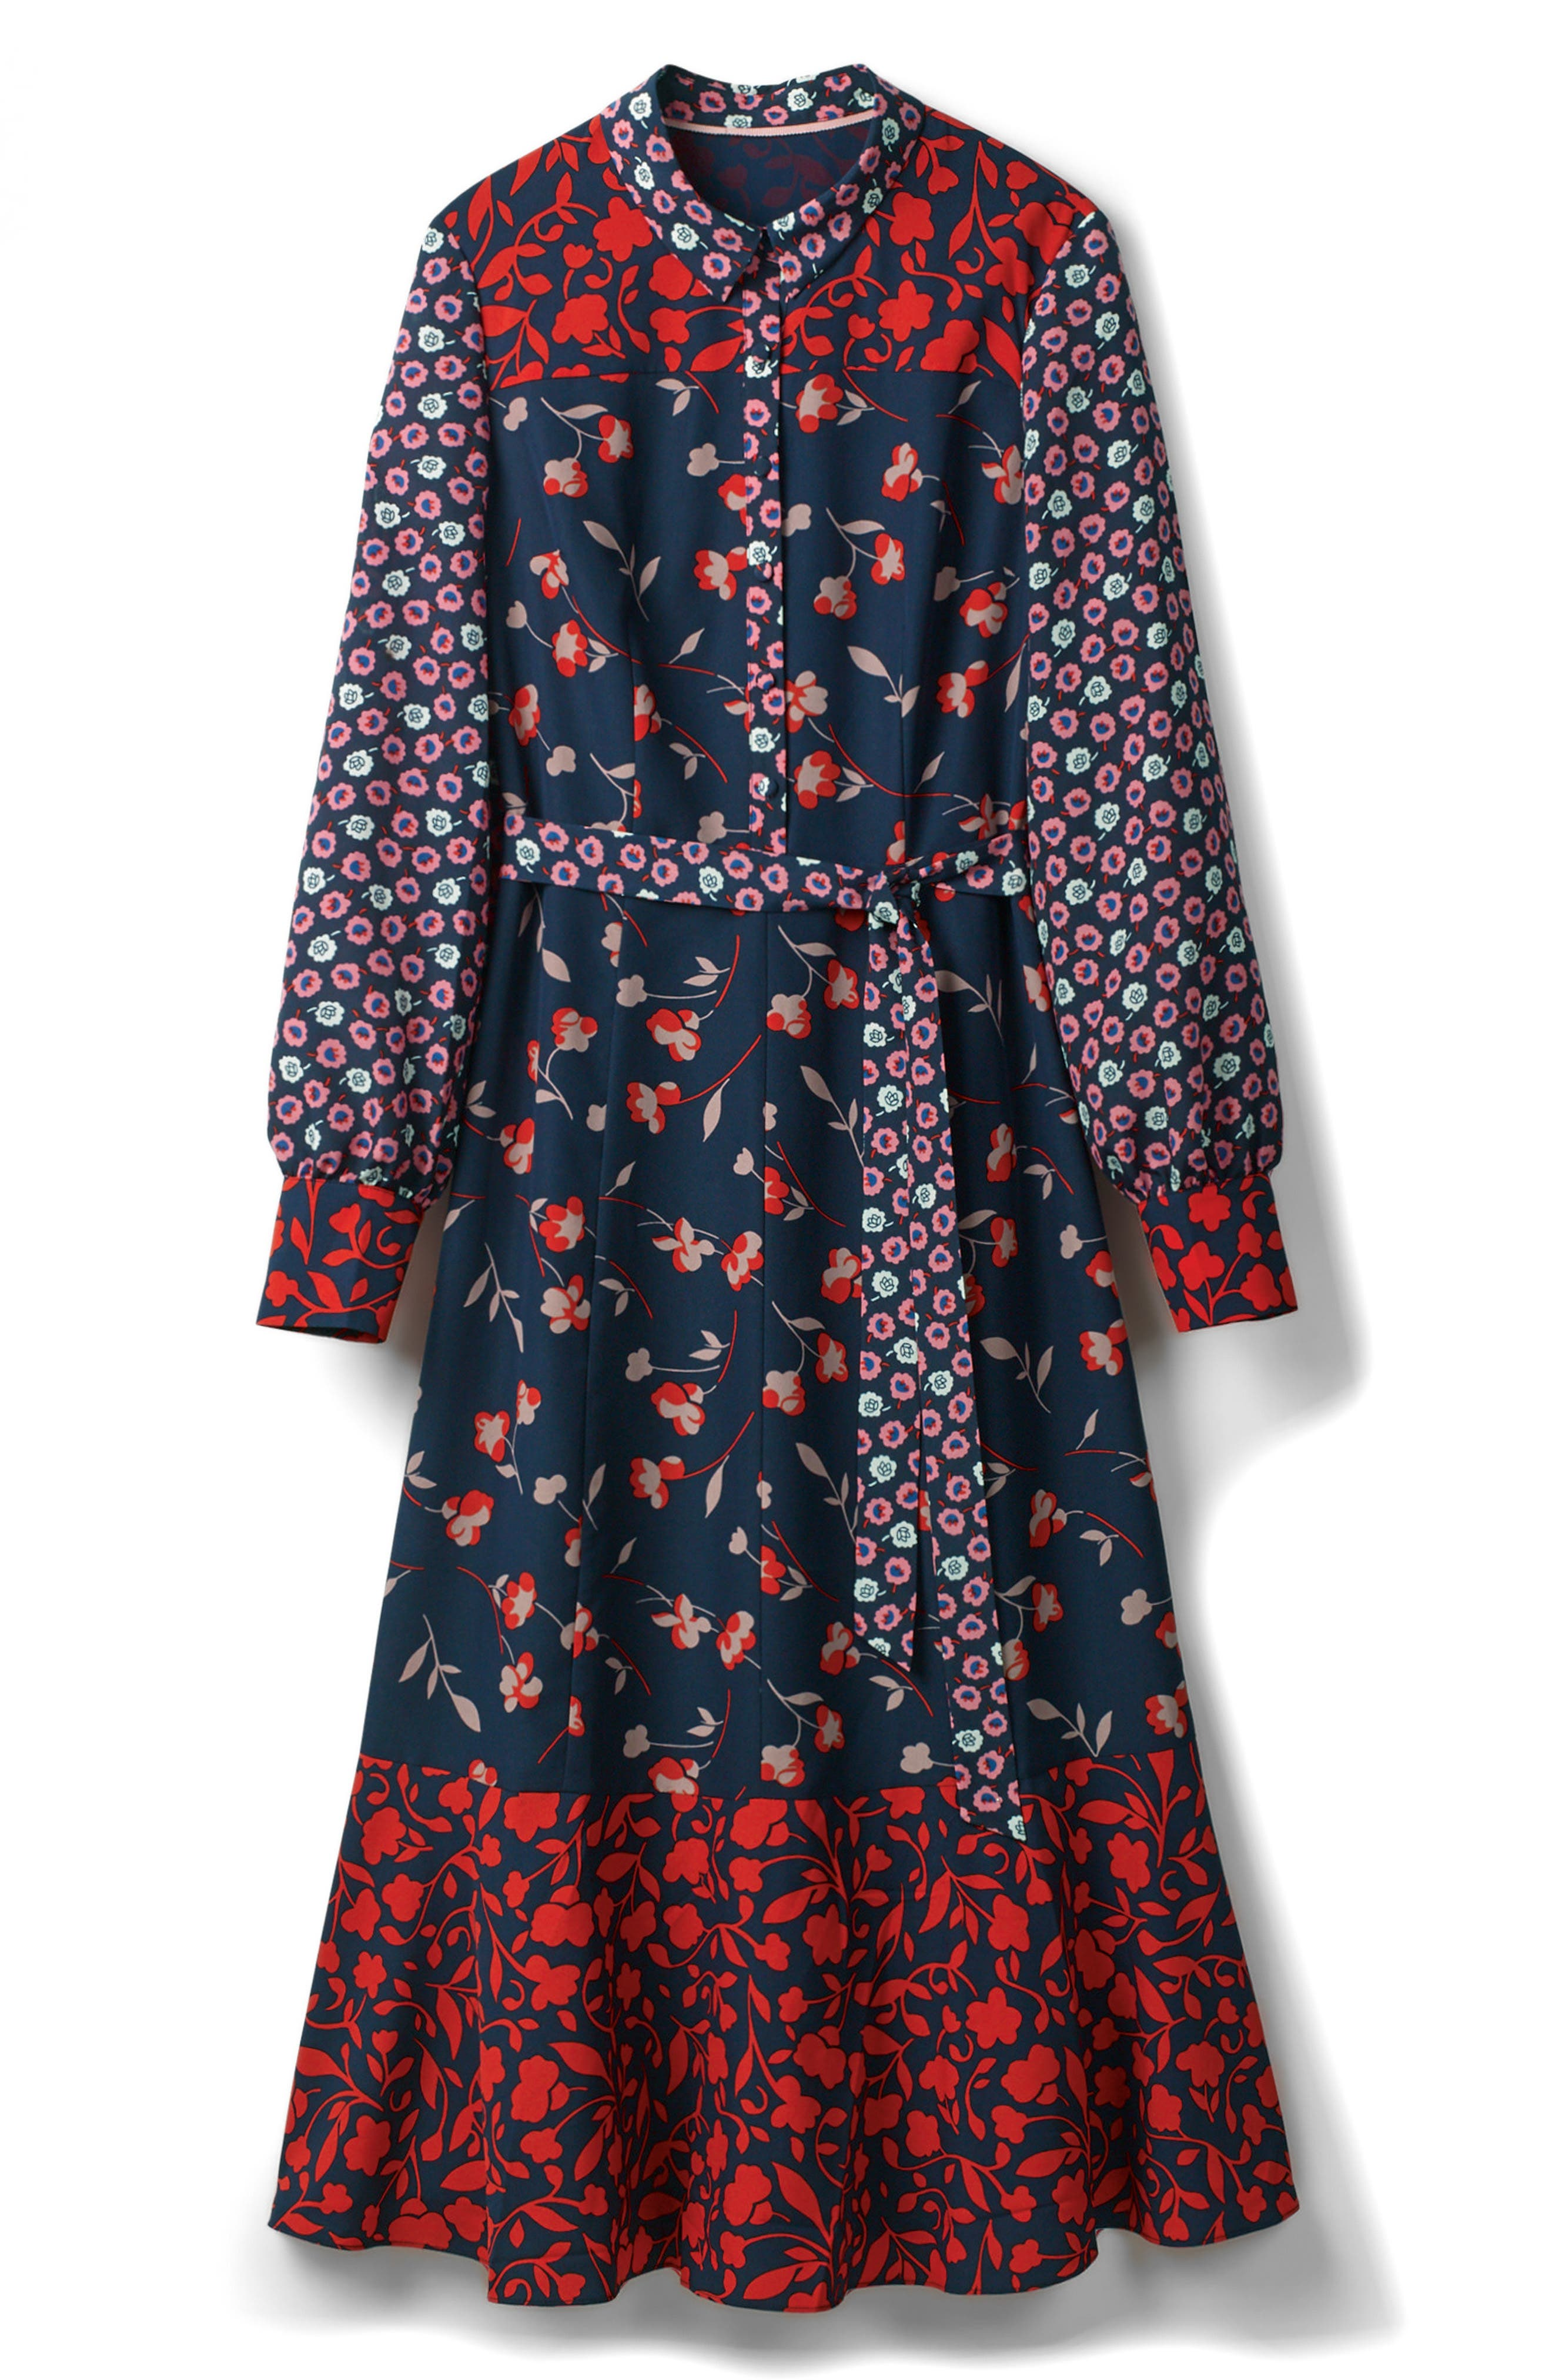 Main Image - Boden Mixed Print Midi Shirtdress